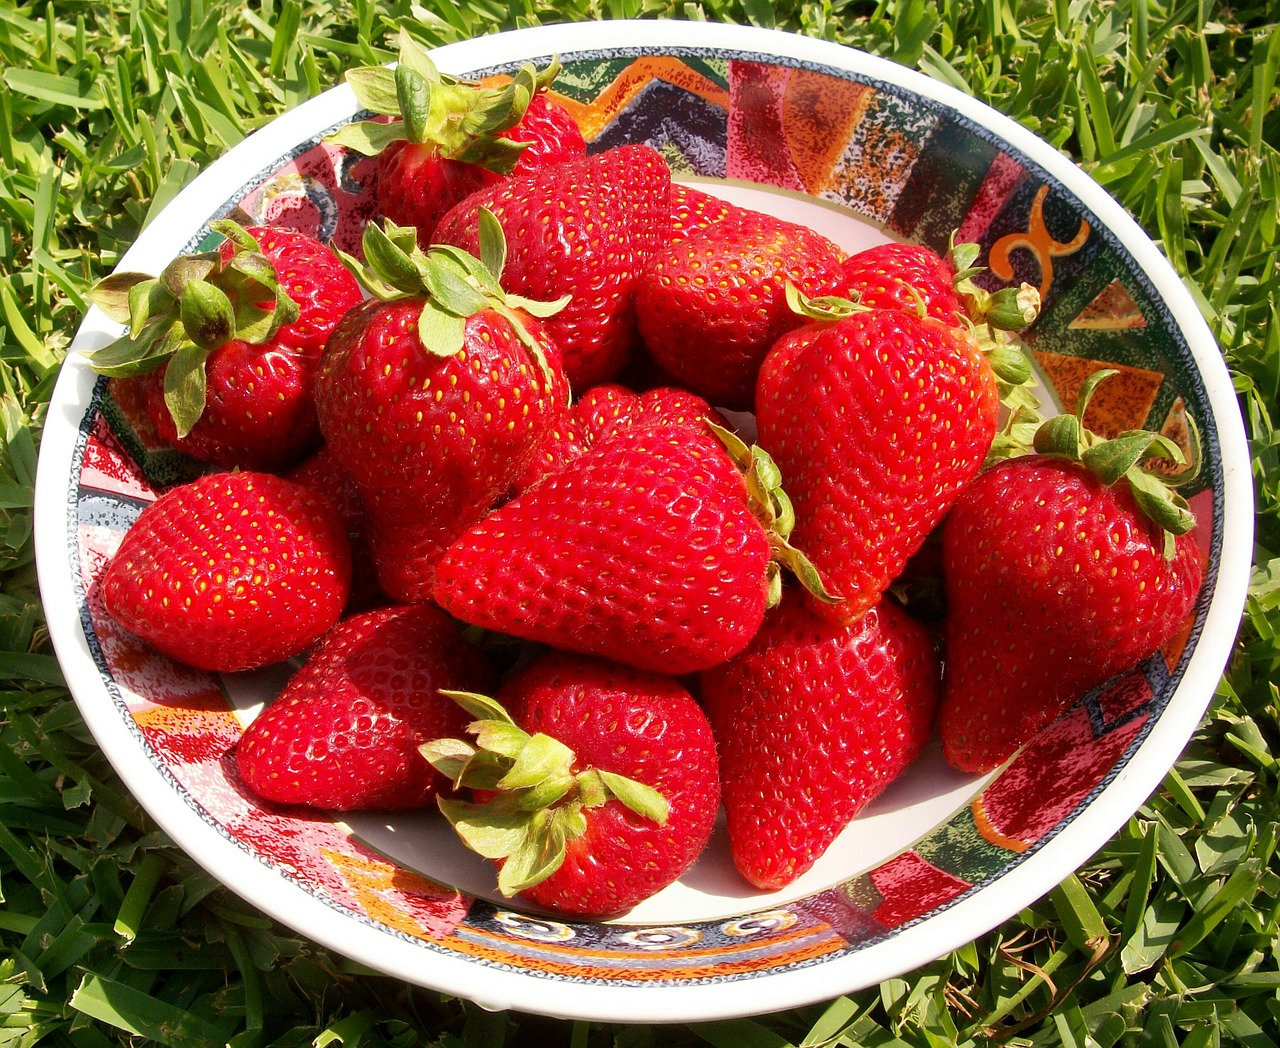 strawberries berries season free photo